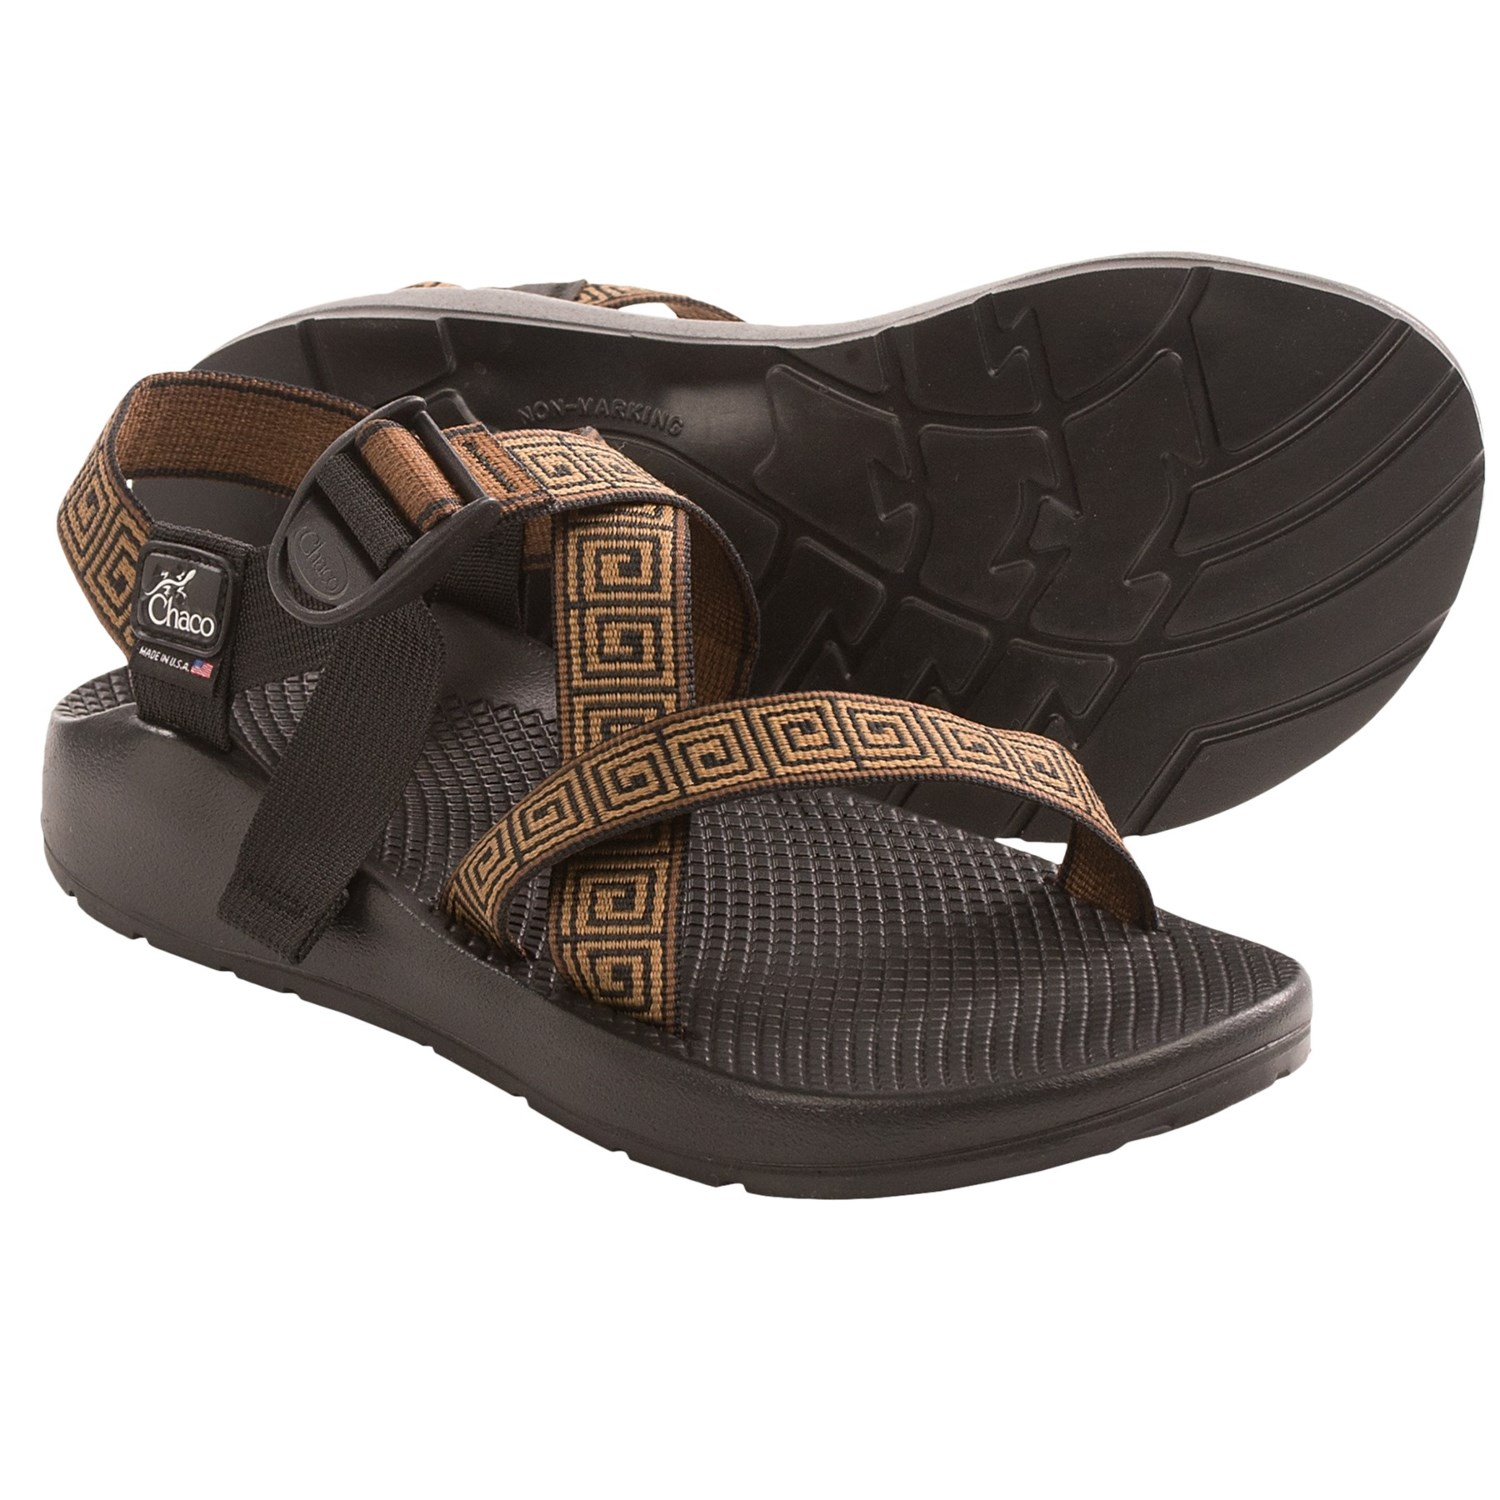 Chaco coupon code 2018